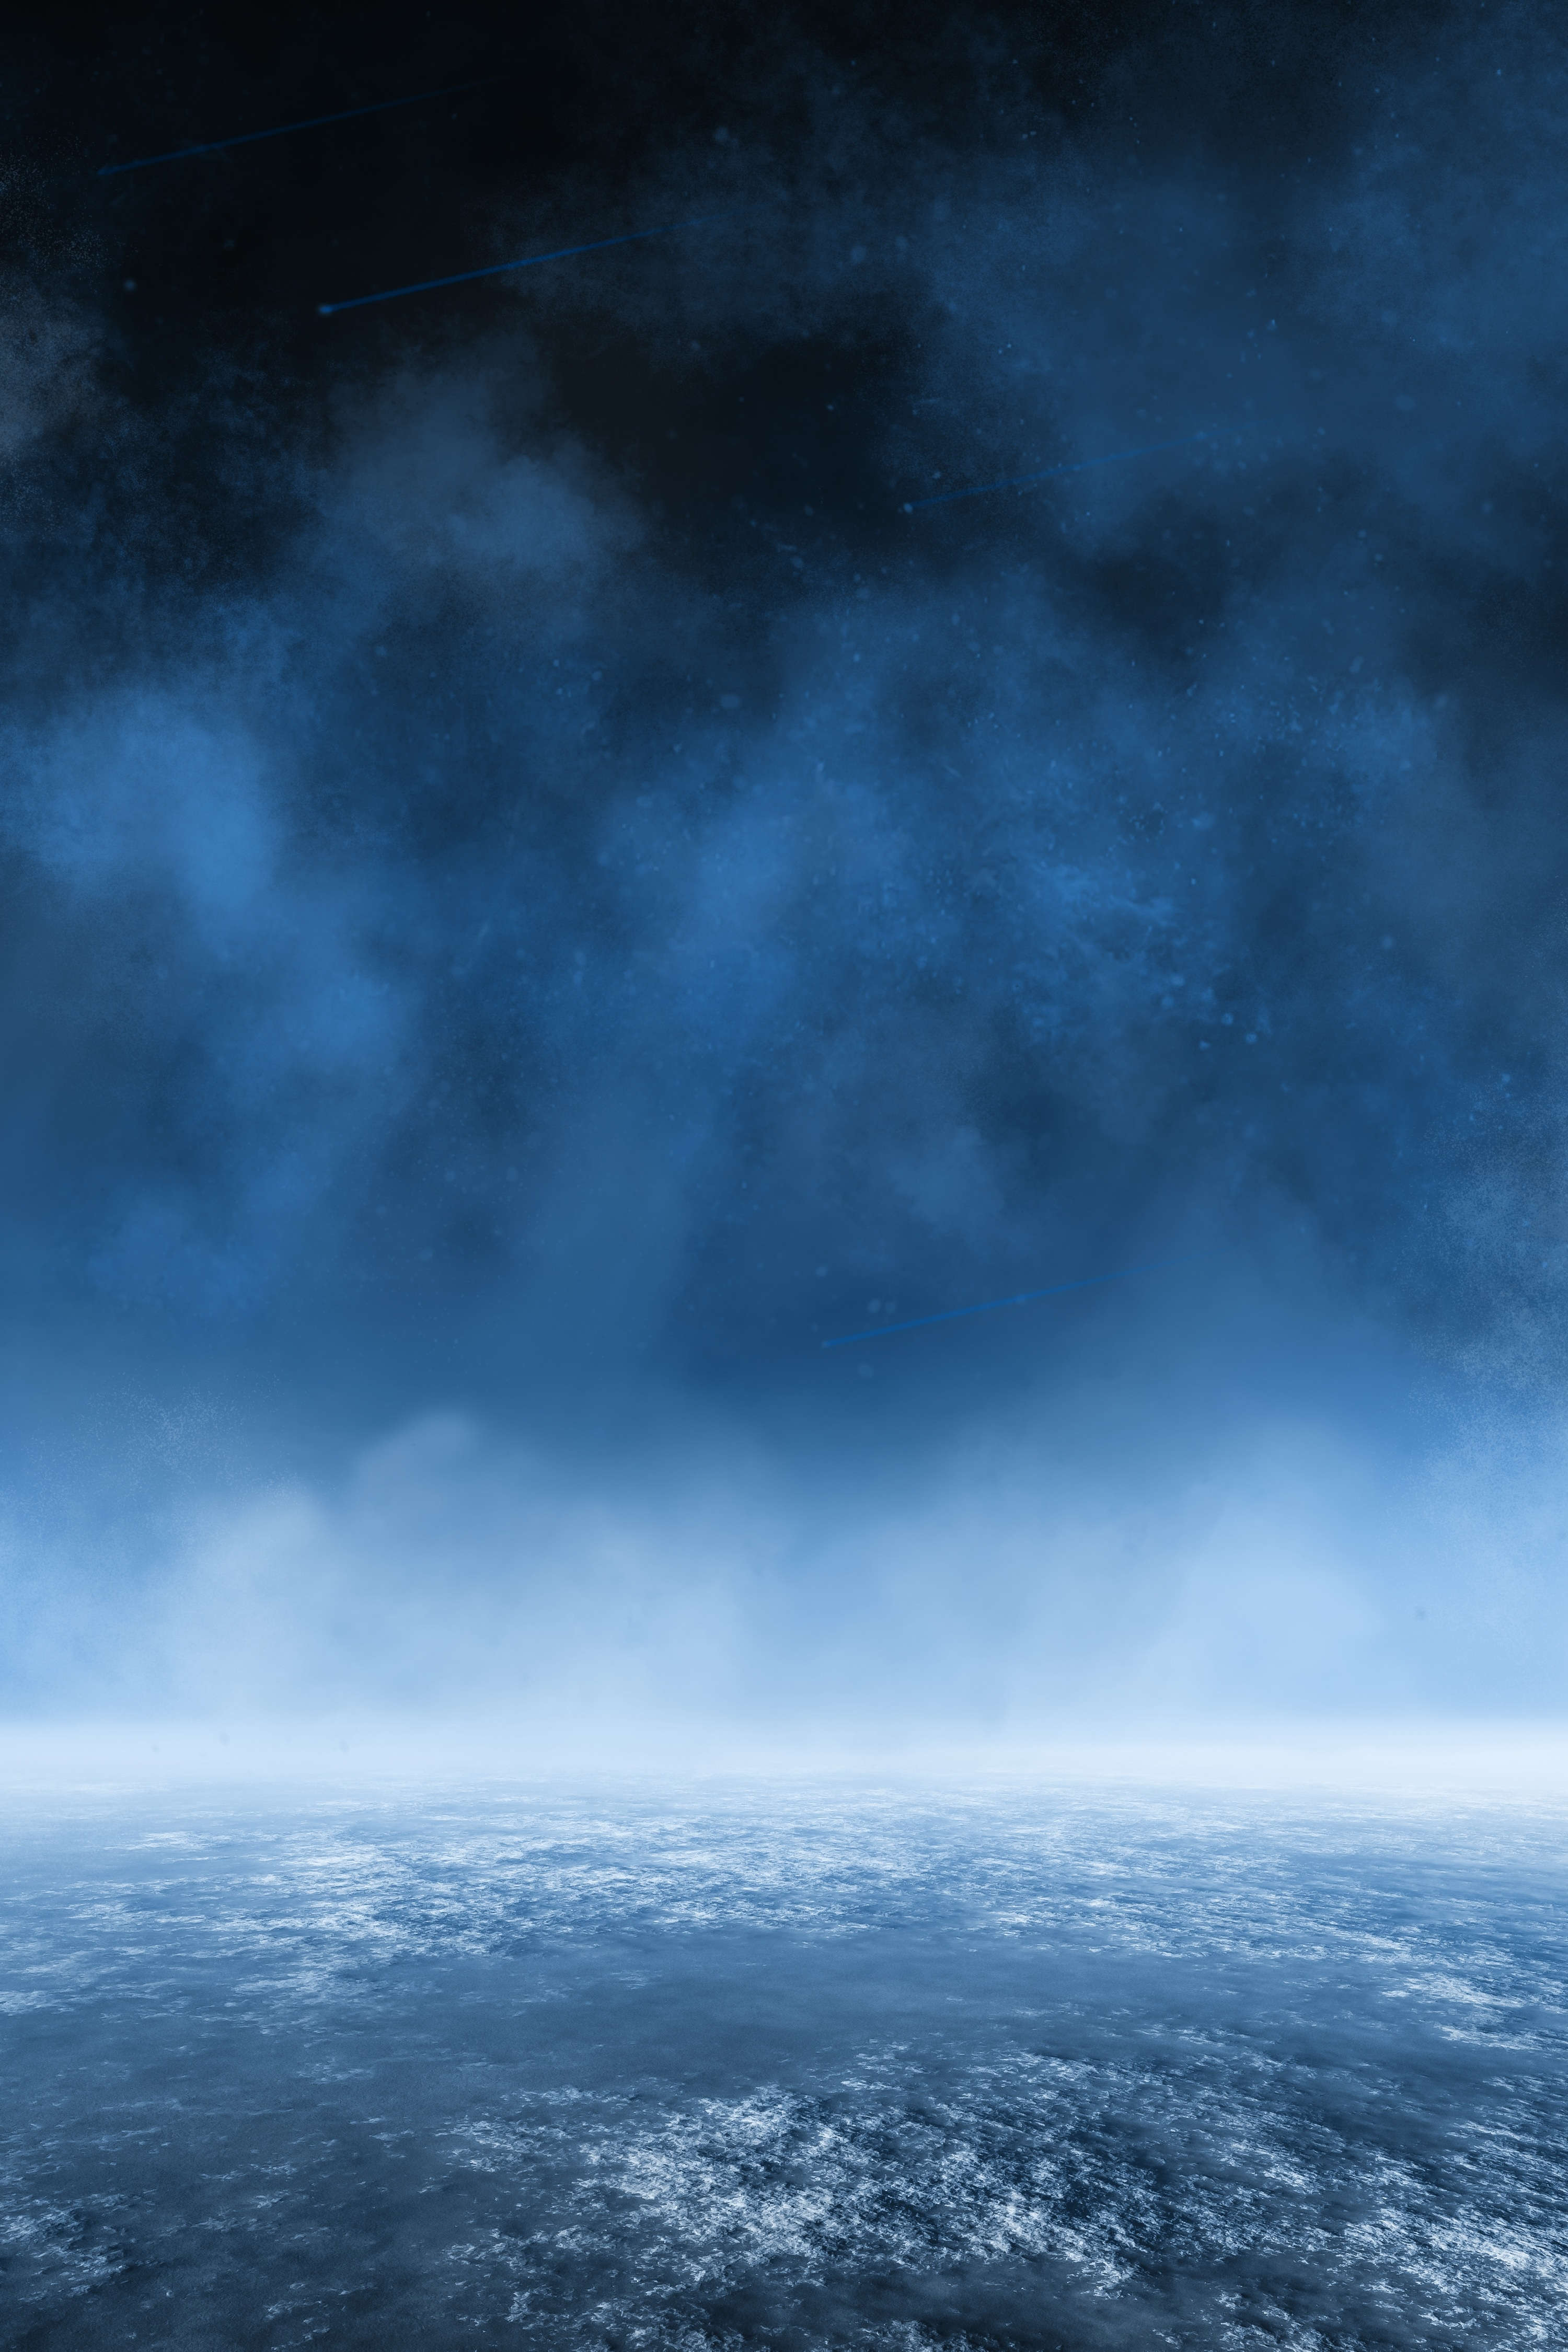 154144 download wallpaper Clouds, Universe, View From Above, Land, Earth, Atmosphere screensavers and pictures for free